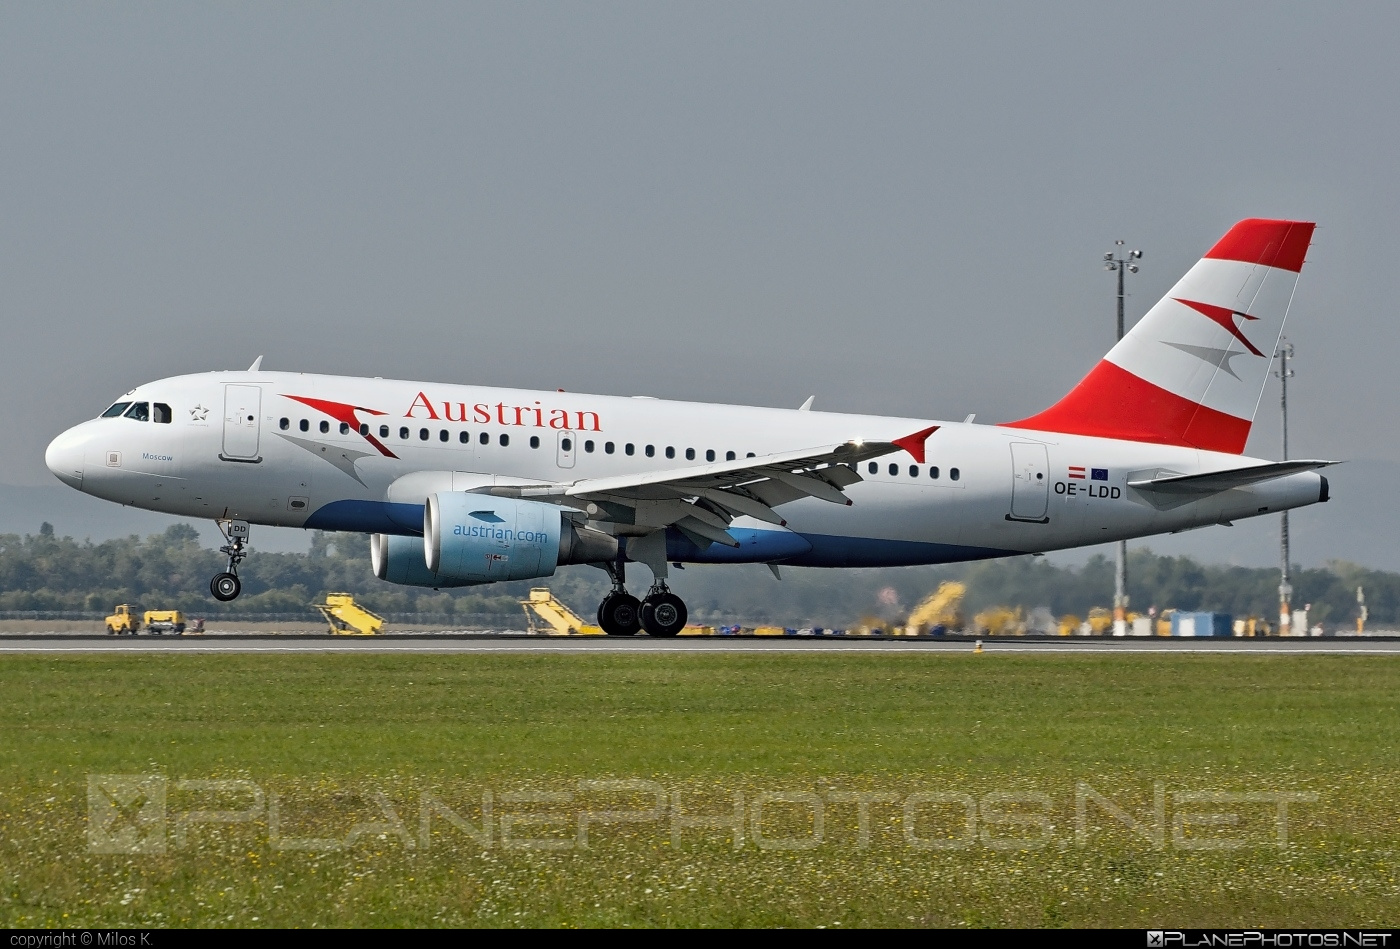 Airbus A319-112 - OE-LDD operated by Austrian Airlines #a319 #a320family #airbus #airbus319